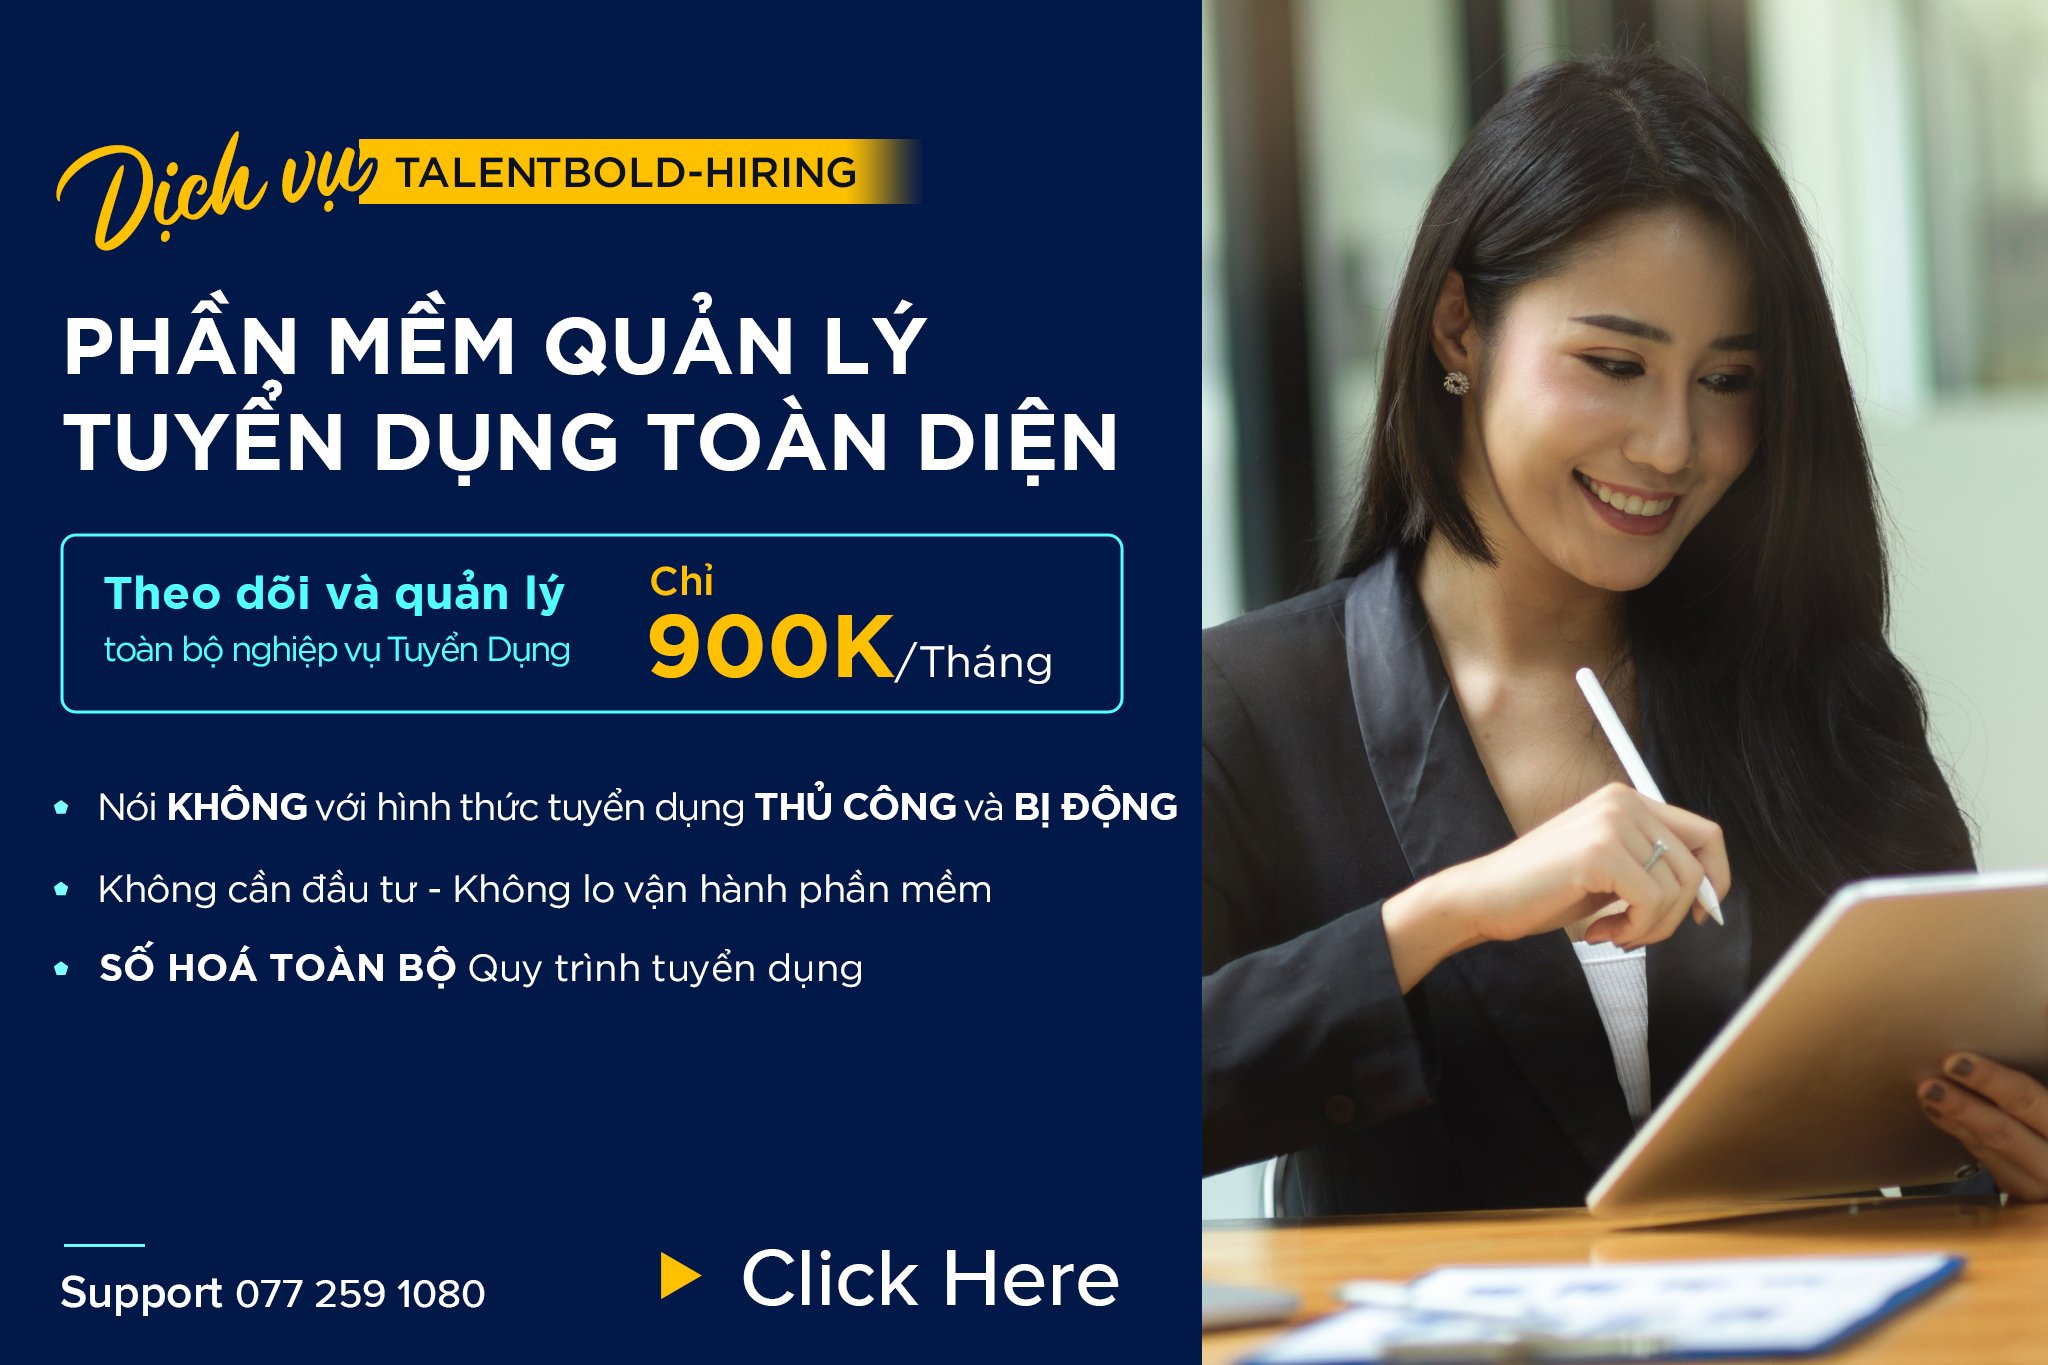 Expat Jobs - Free Job Posting Sites In Vietnam